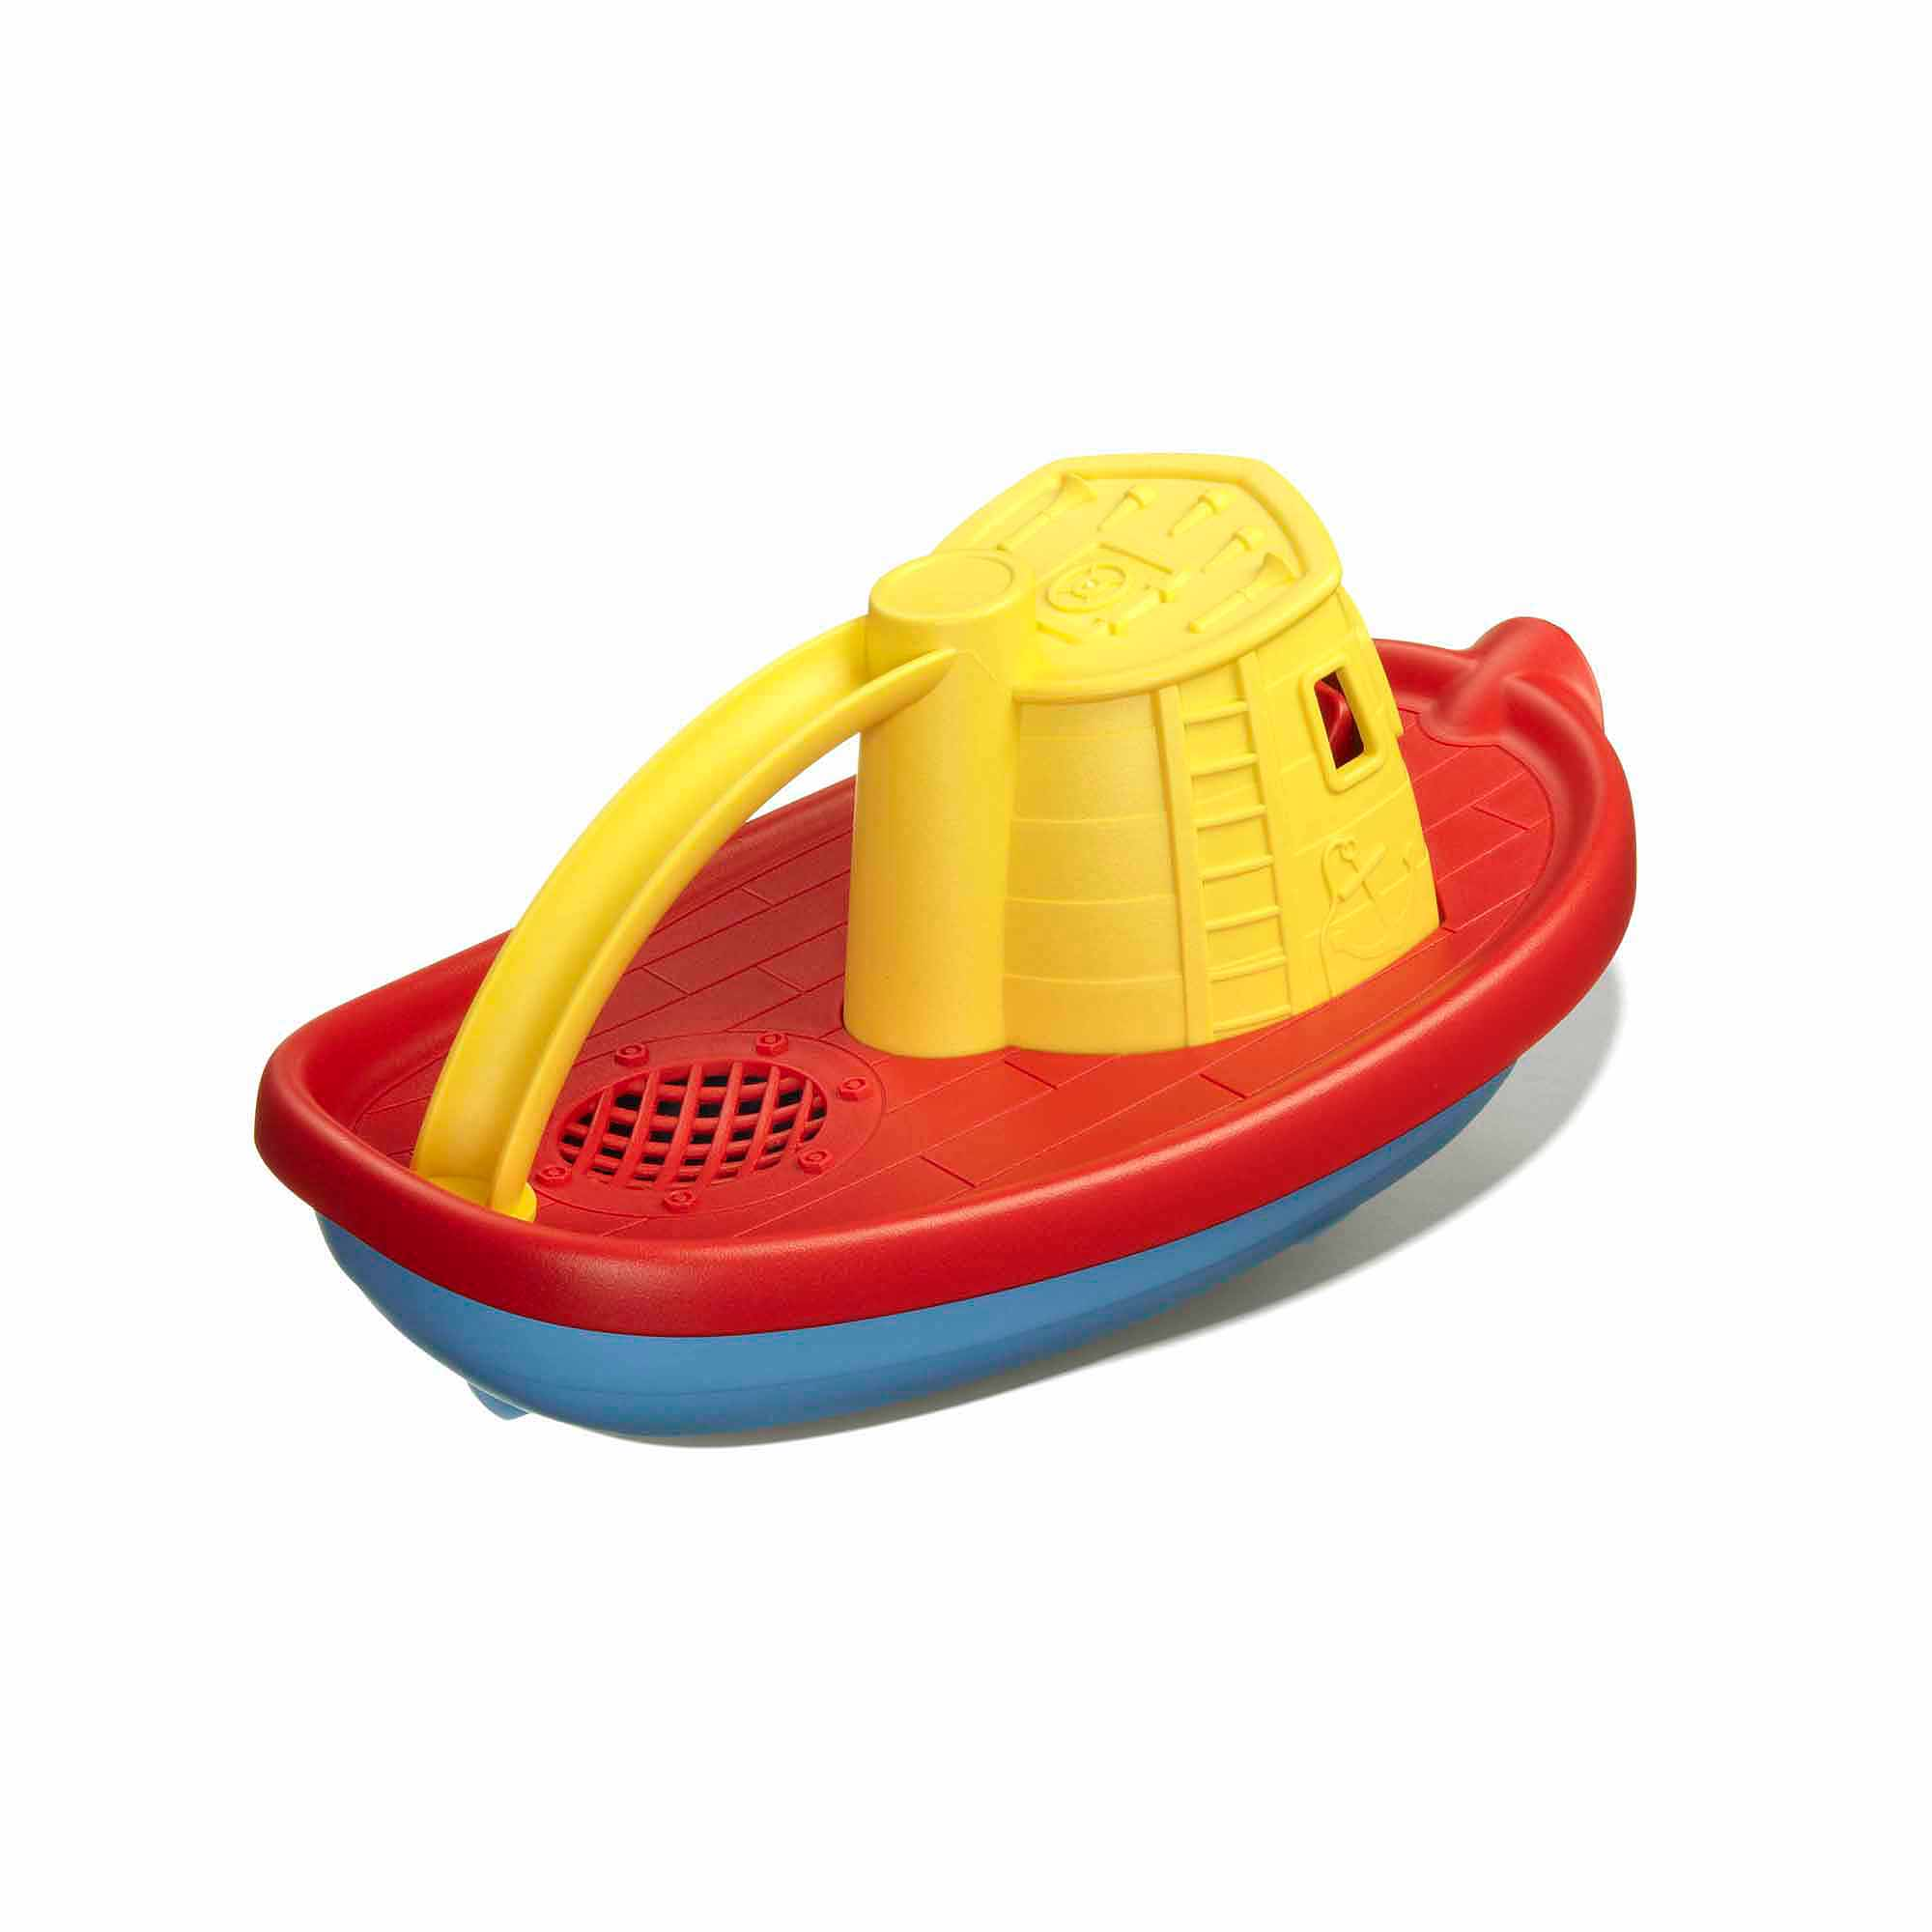 Green Toys Tug Boat Bath Toy, Yellow Top - Walmart.com